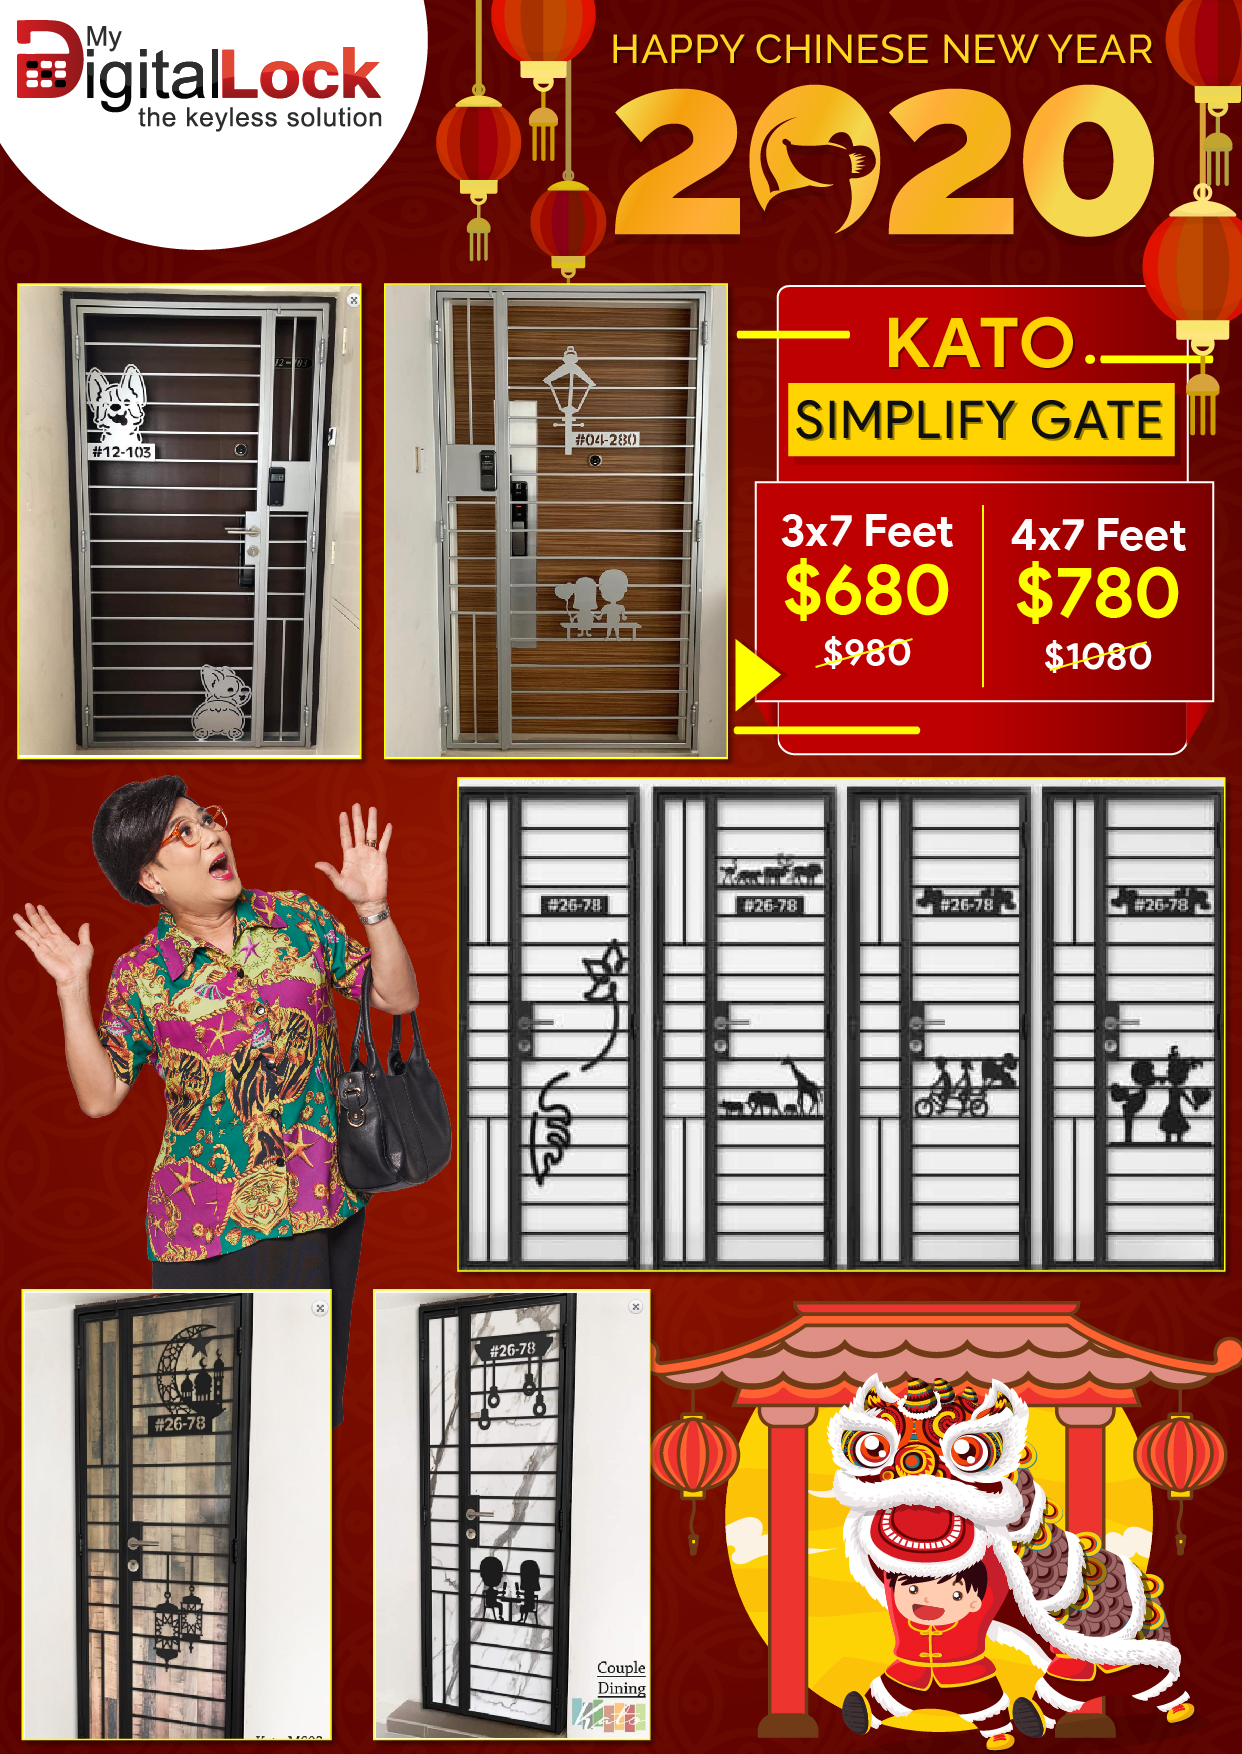 Happy-Chinese-New-Year-2020-Kato-Simplify-Gate